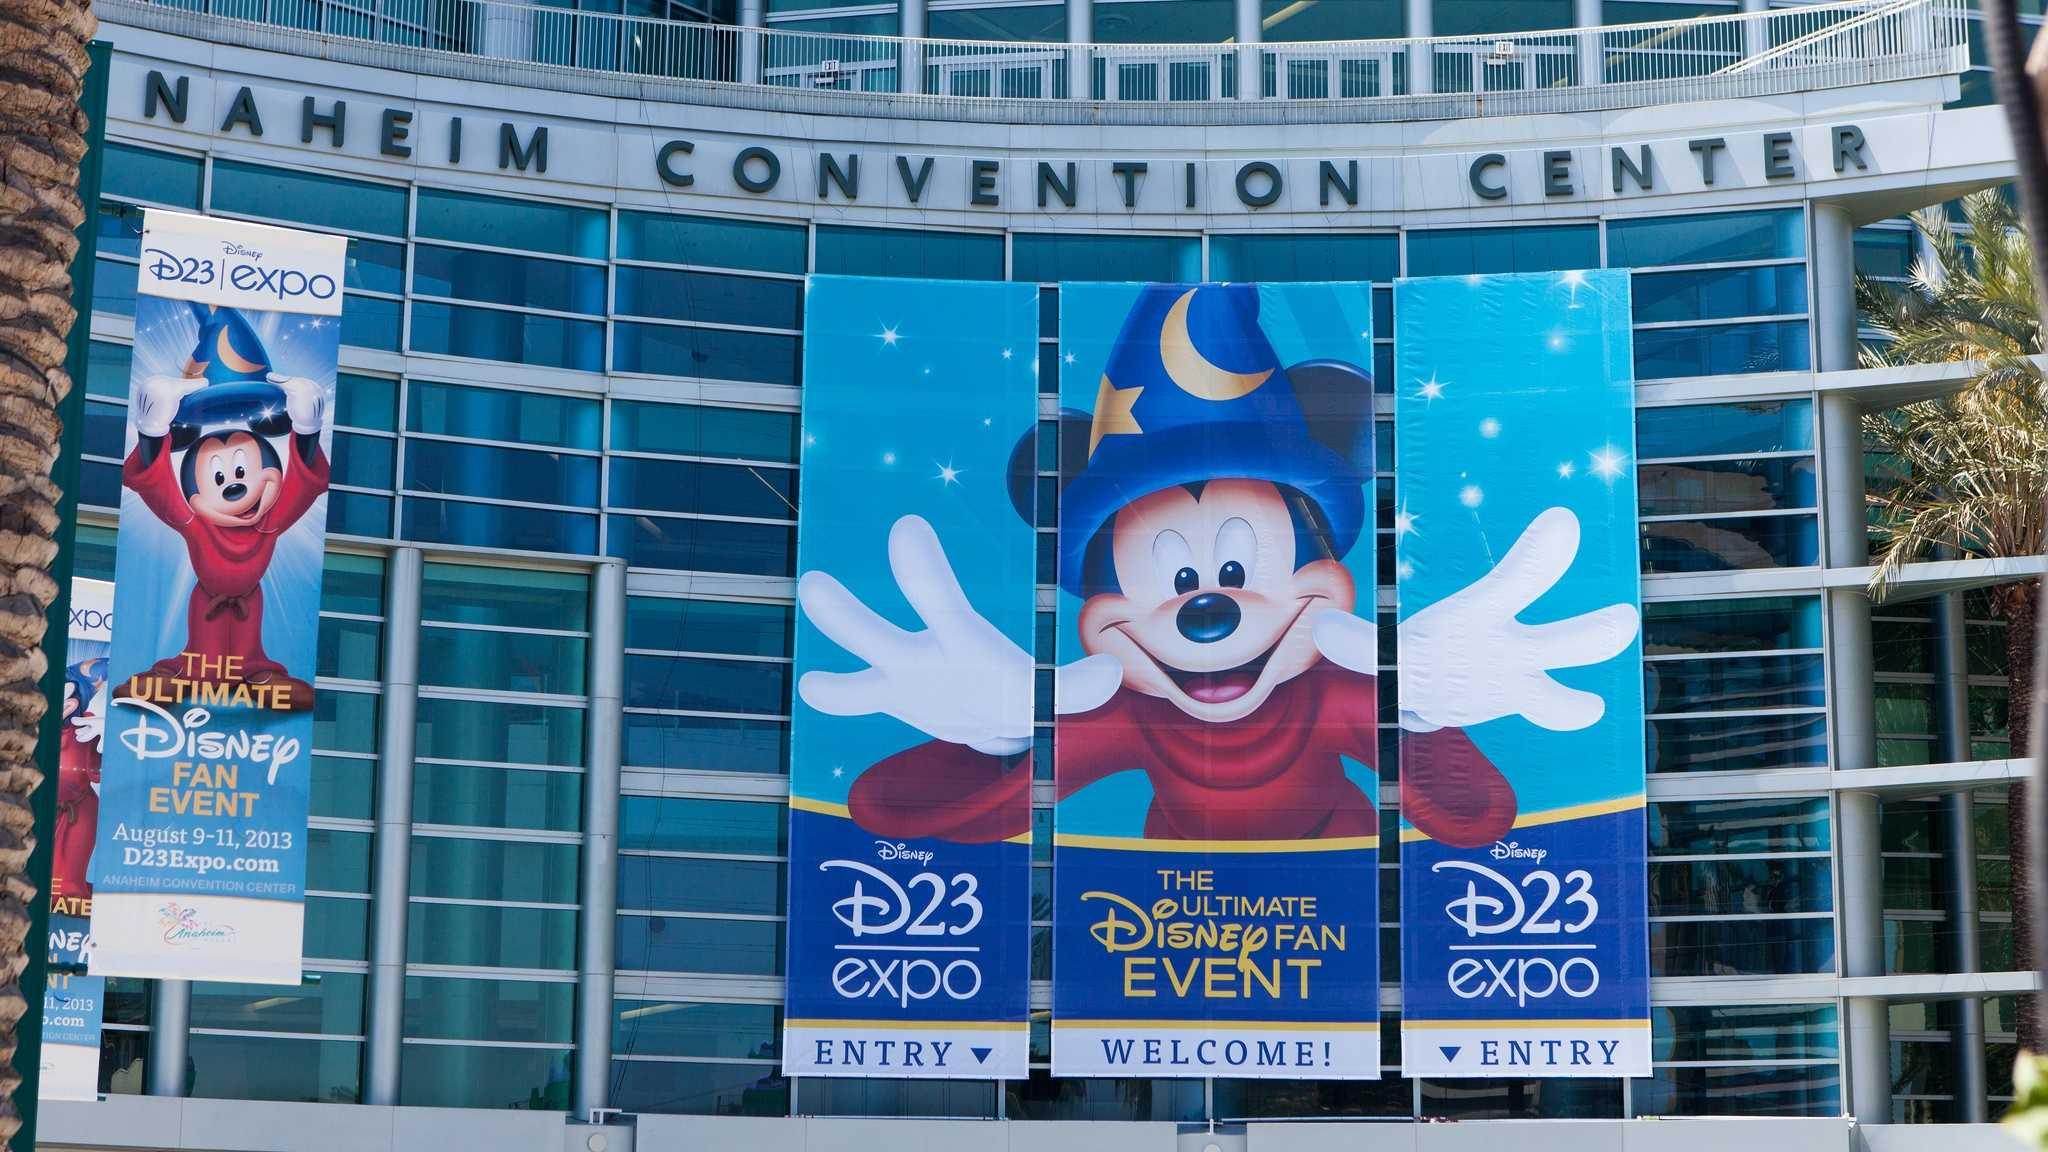 Get ready for exciting new d23 expo details including golden girls, hercules, john stamos, and more!